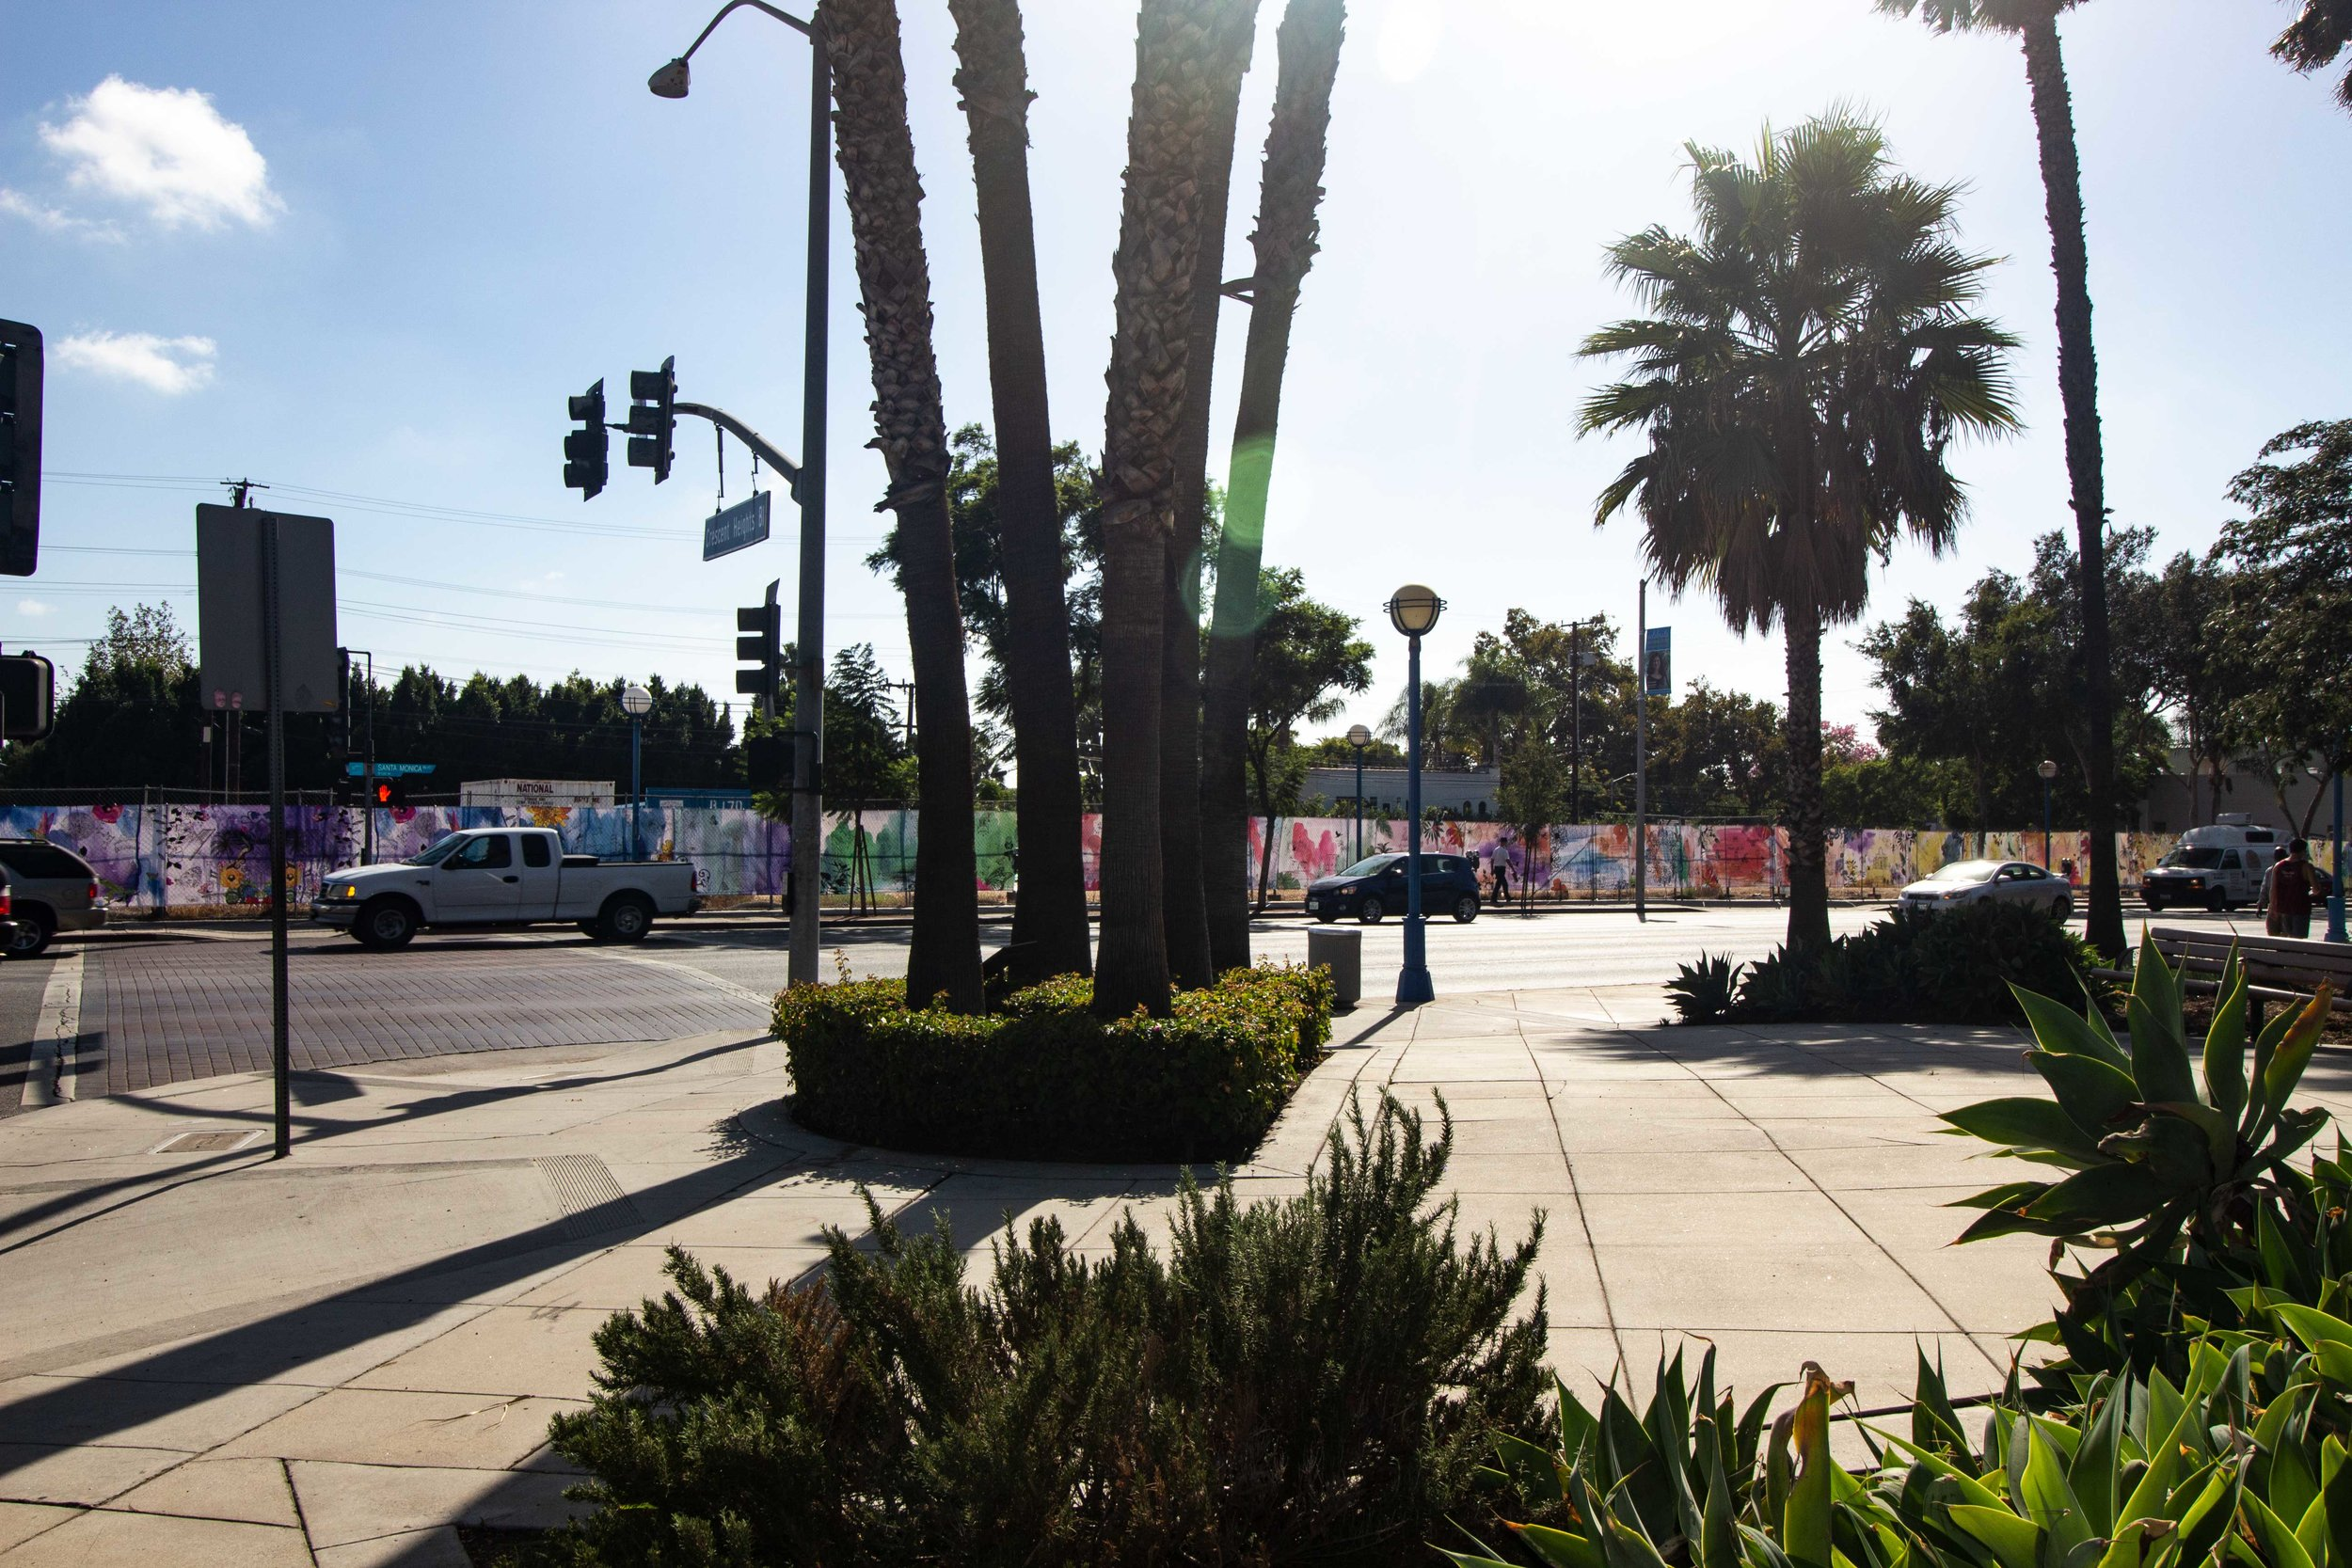 Welcome to the Brightside artwork, 57 banners, 10' x 6' along Havenhurst, Crescent Heights and Santa Monica.